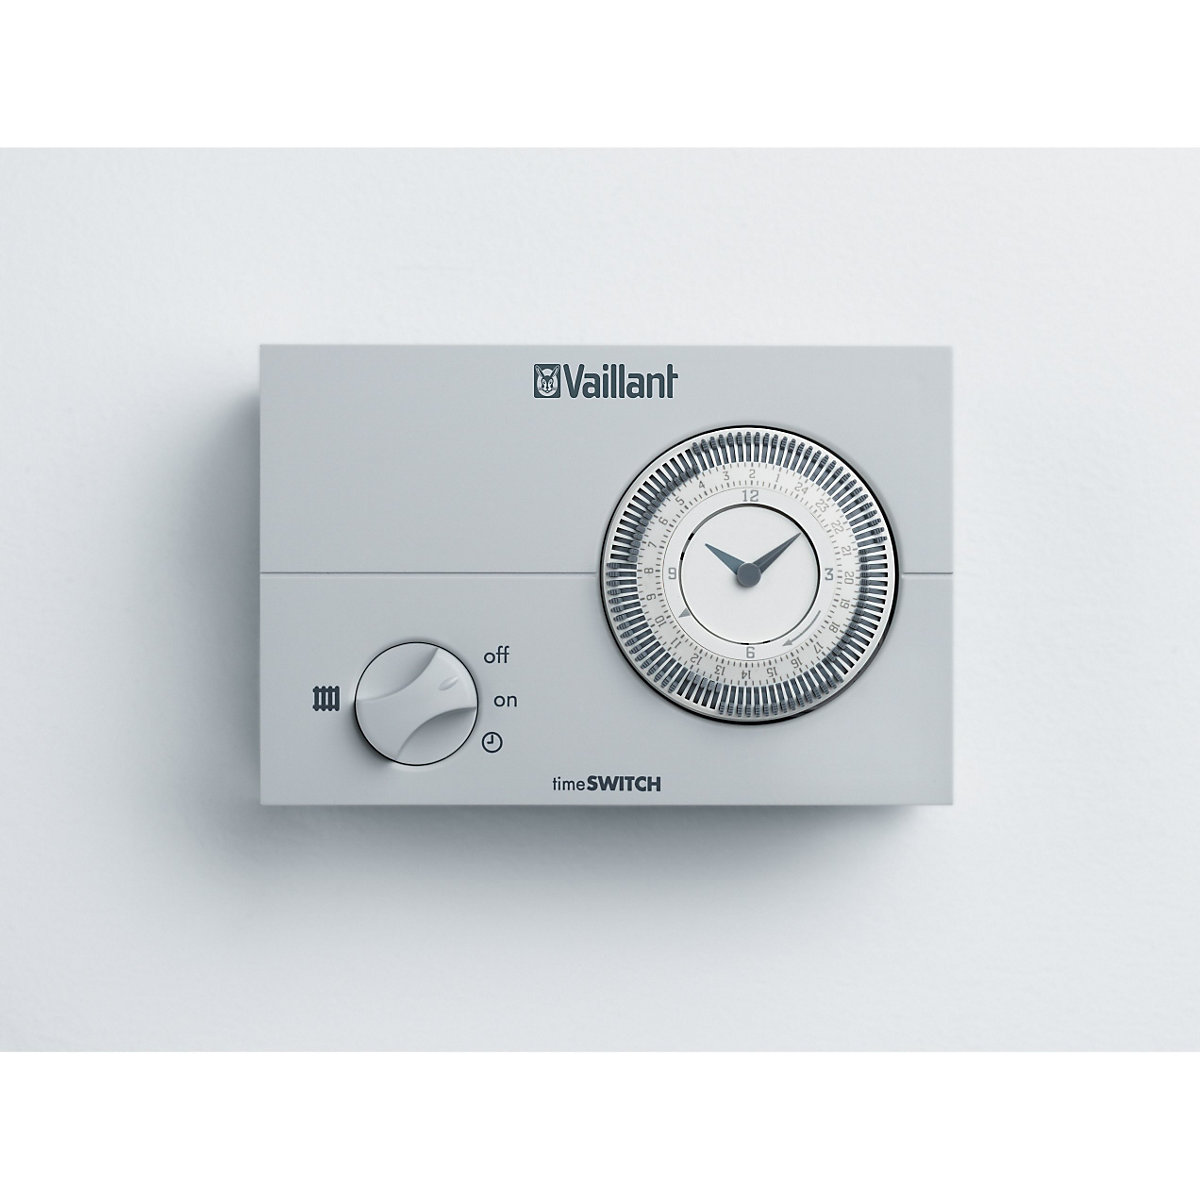 Central Heating Programmers, Timers & Thermostats | Travis Perkins